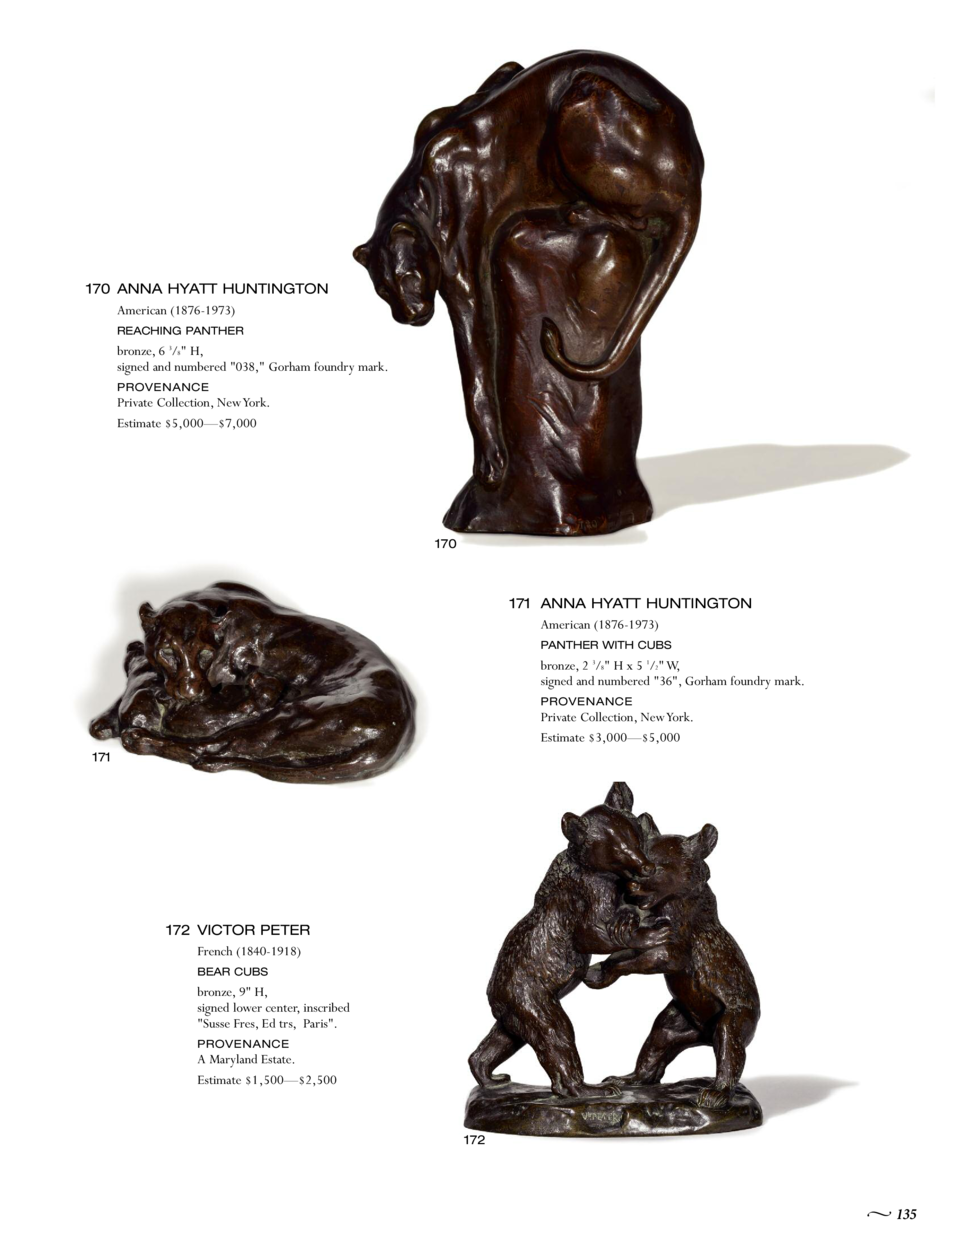 170 ANNA HYATT HUNTINGTON American  1876-1973  REACHING PANTHER  bronze, 6 3 8  H, signed and numbered  038,  Gorham found...